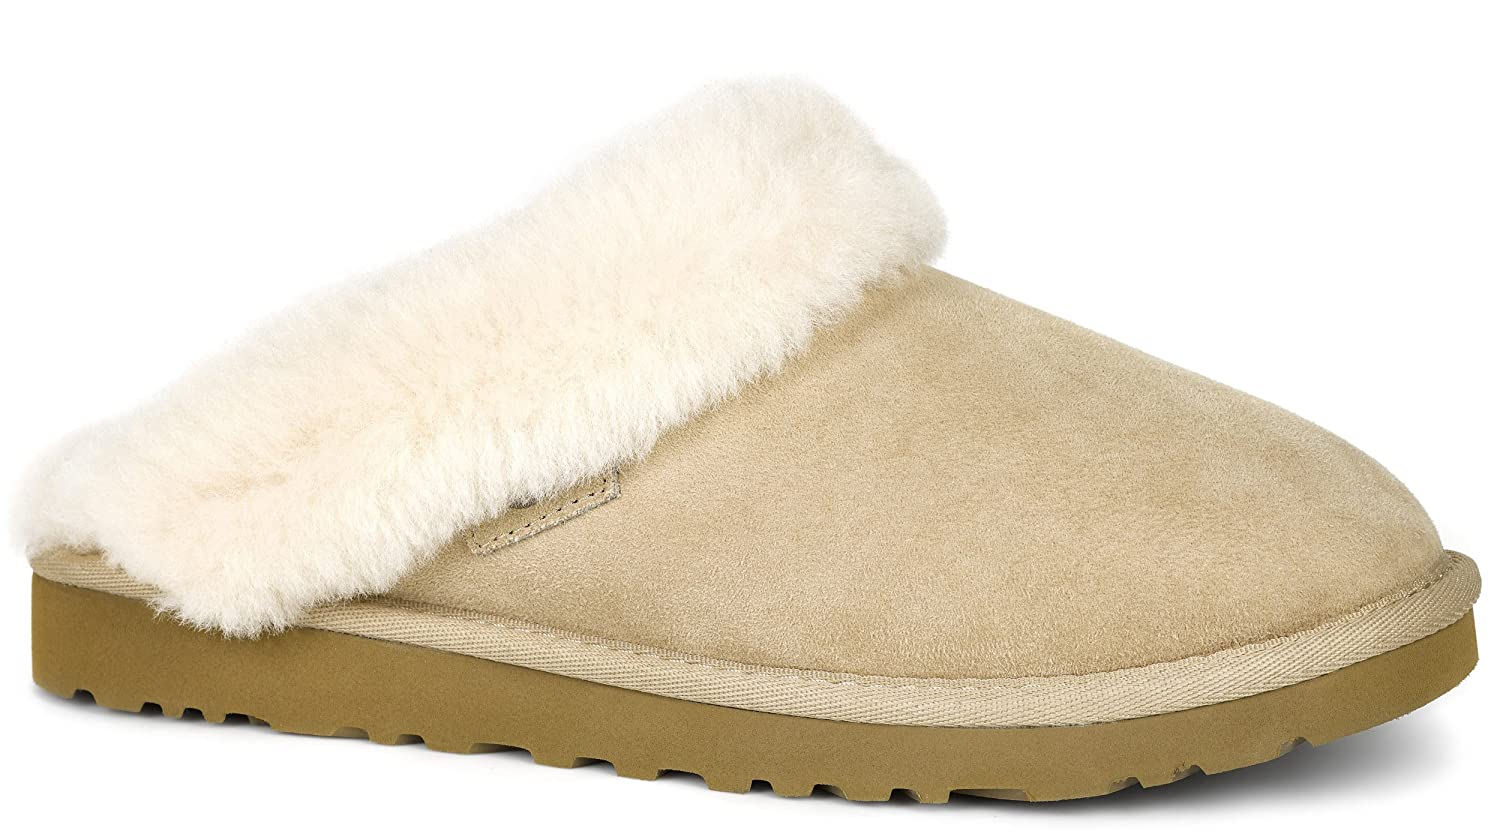 23324b967cc UGG Women's Cluggette Sand Twinface Slipper 5 B (M): Amazon.co.uk ...